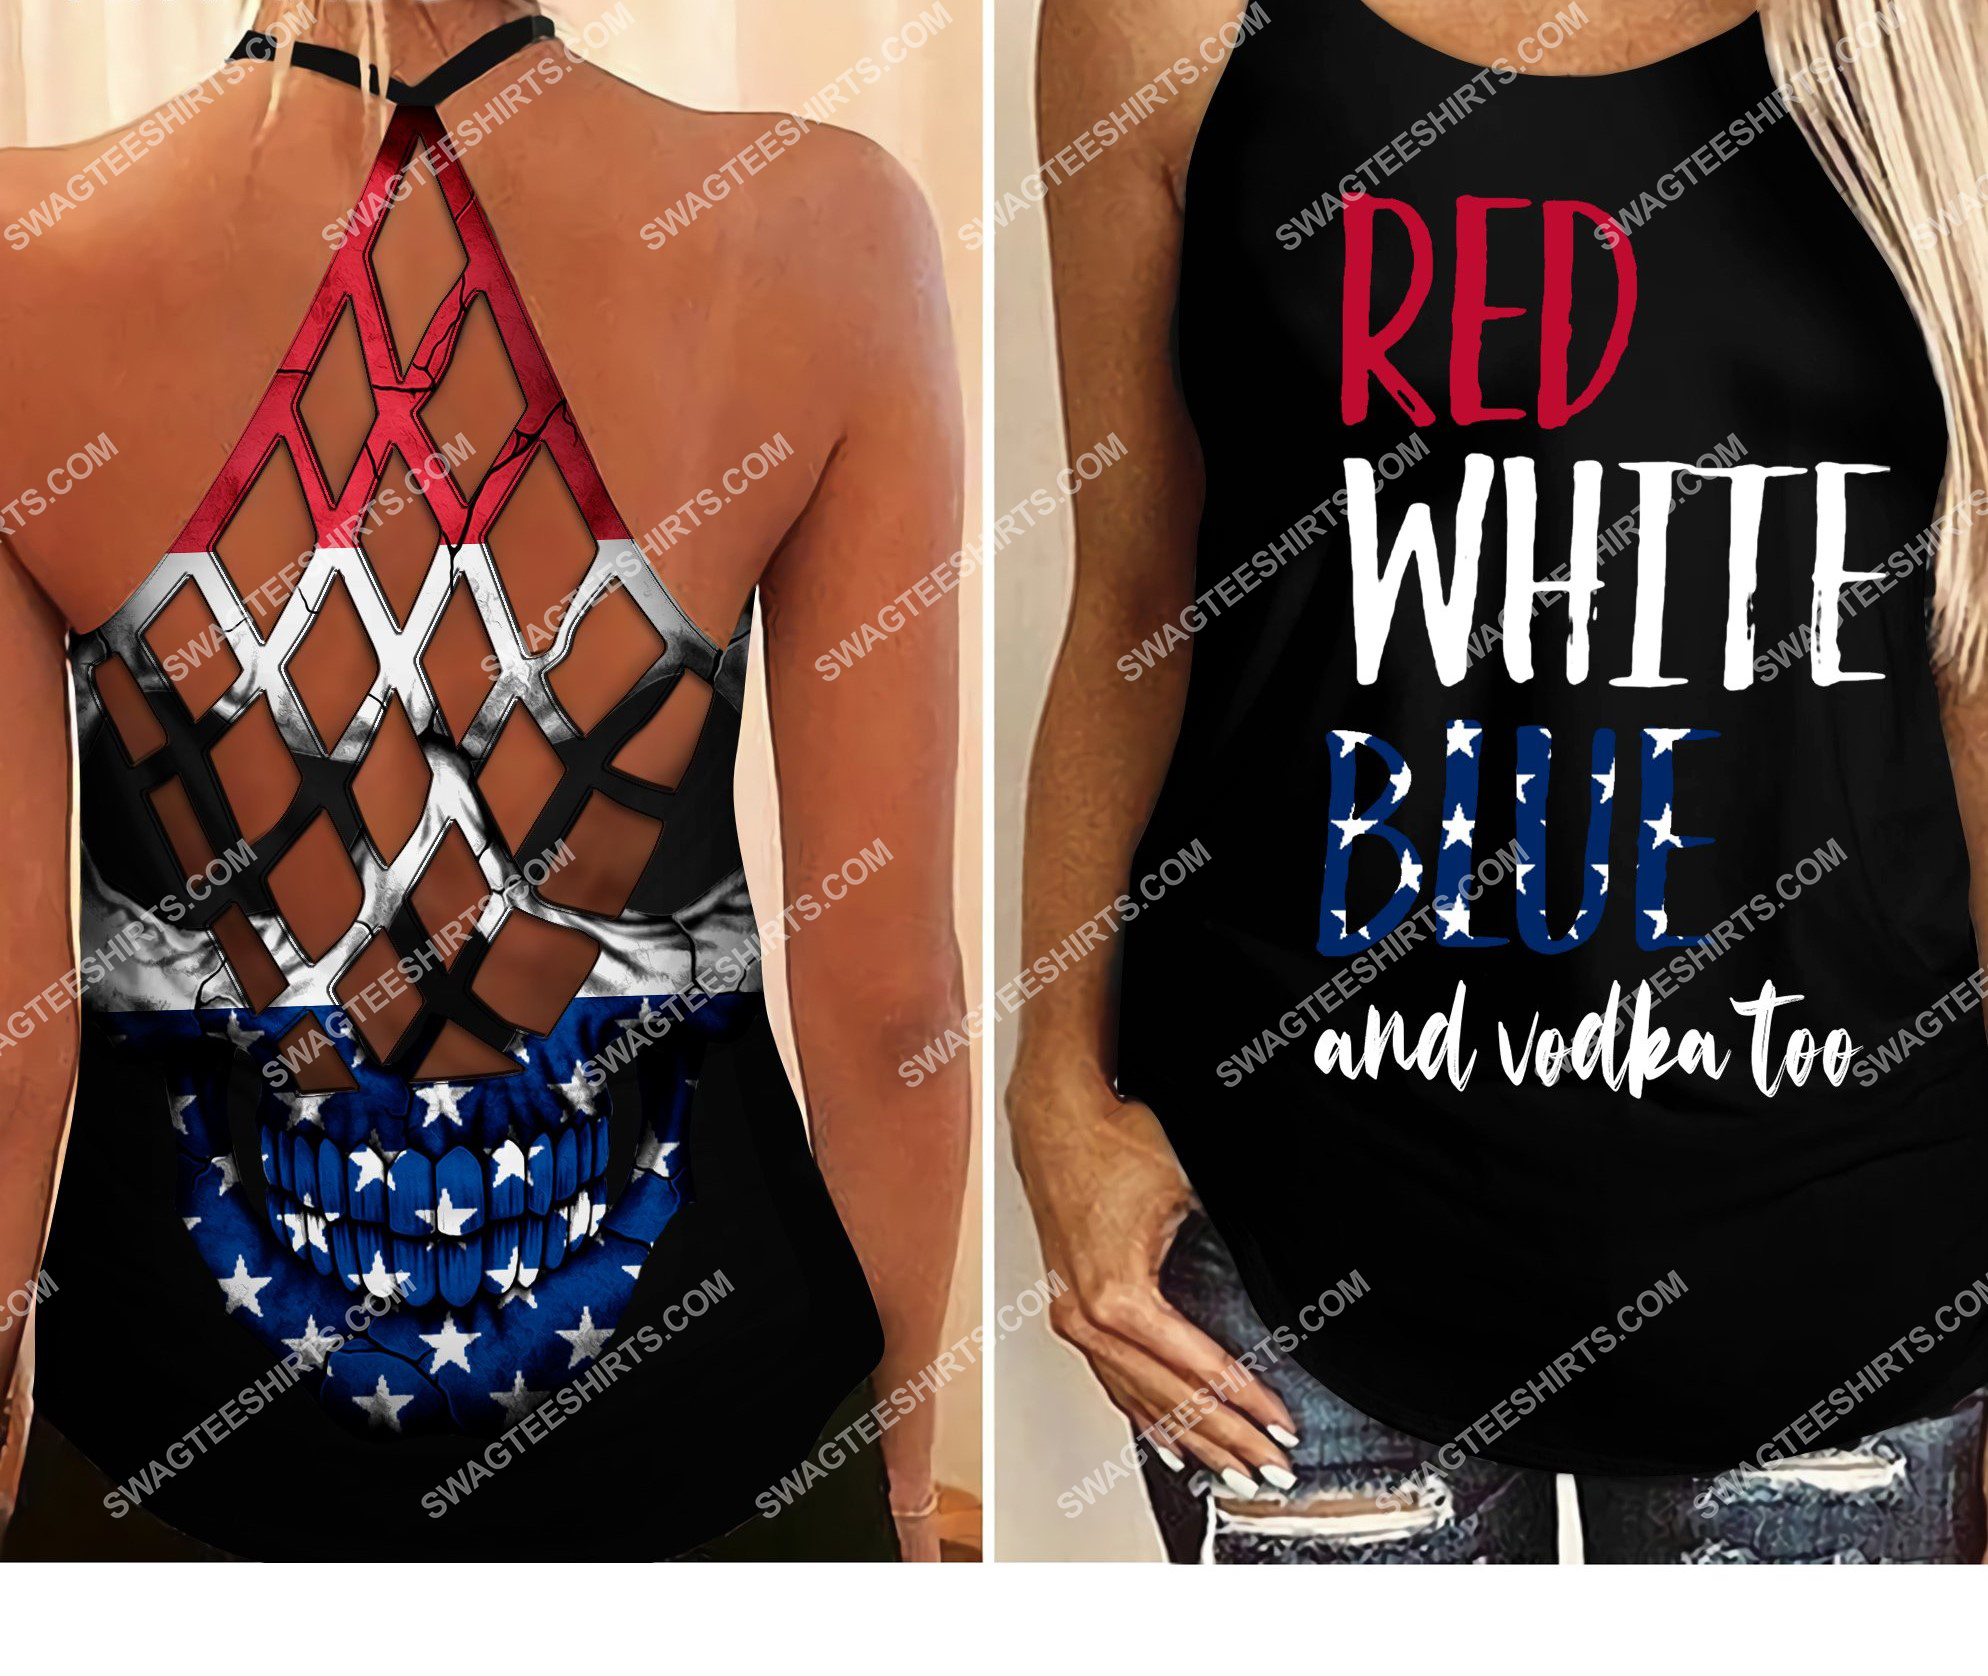 fourth of july red white blue and vodka too all over printed strappy back tank top 2 - Copy